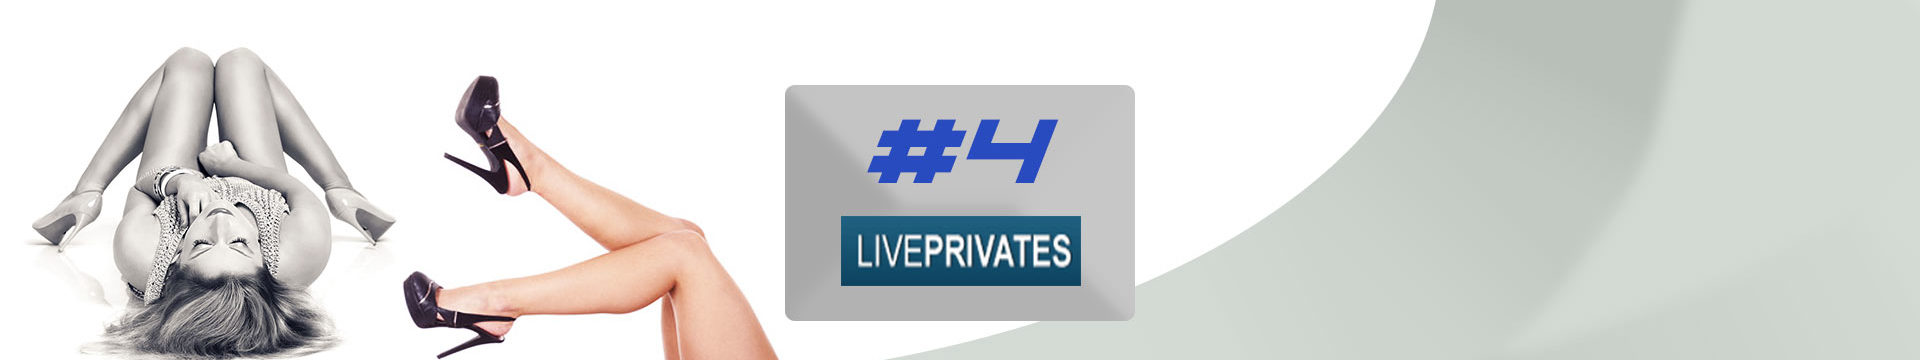 Live Privates Header